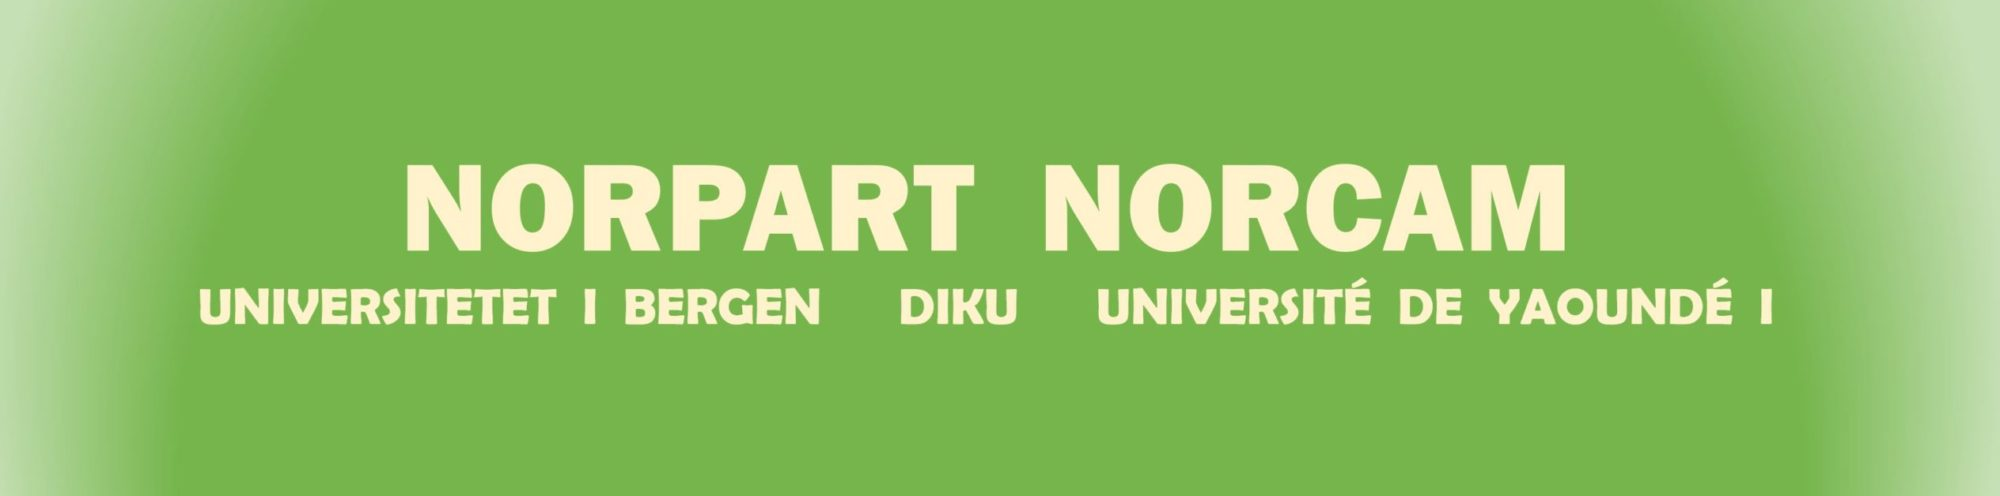 NORPART NORCAM – Exchange